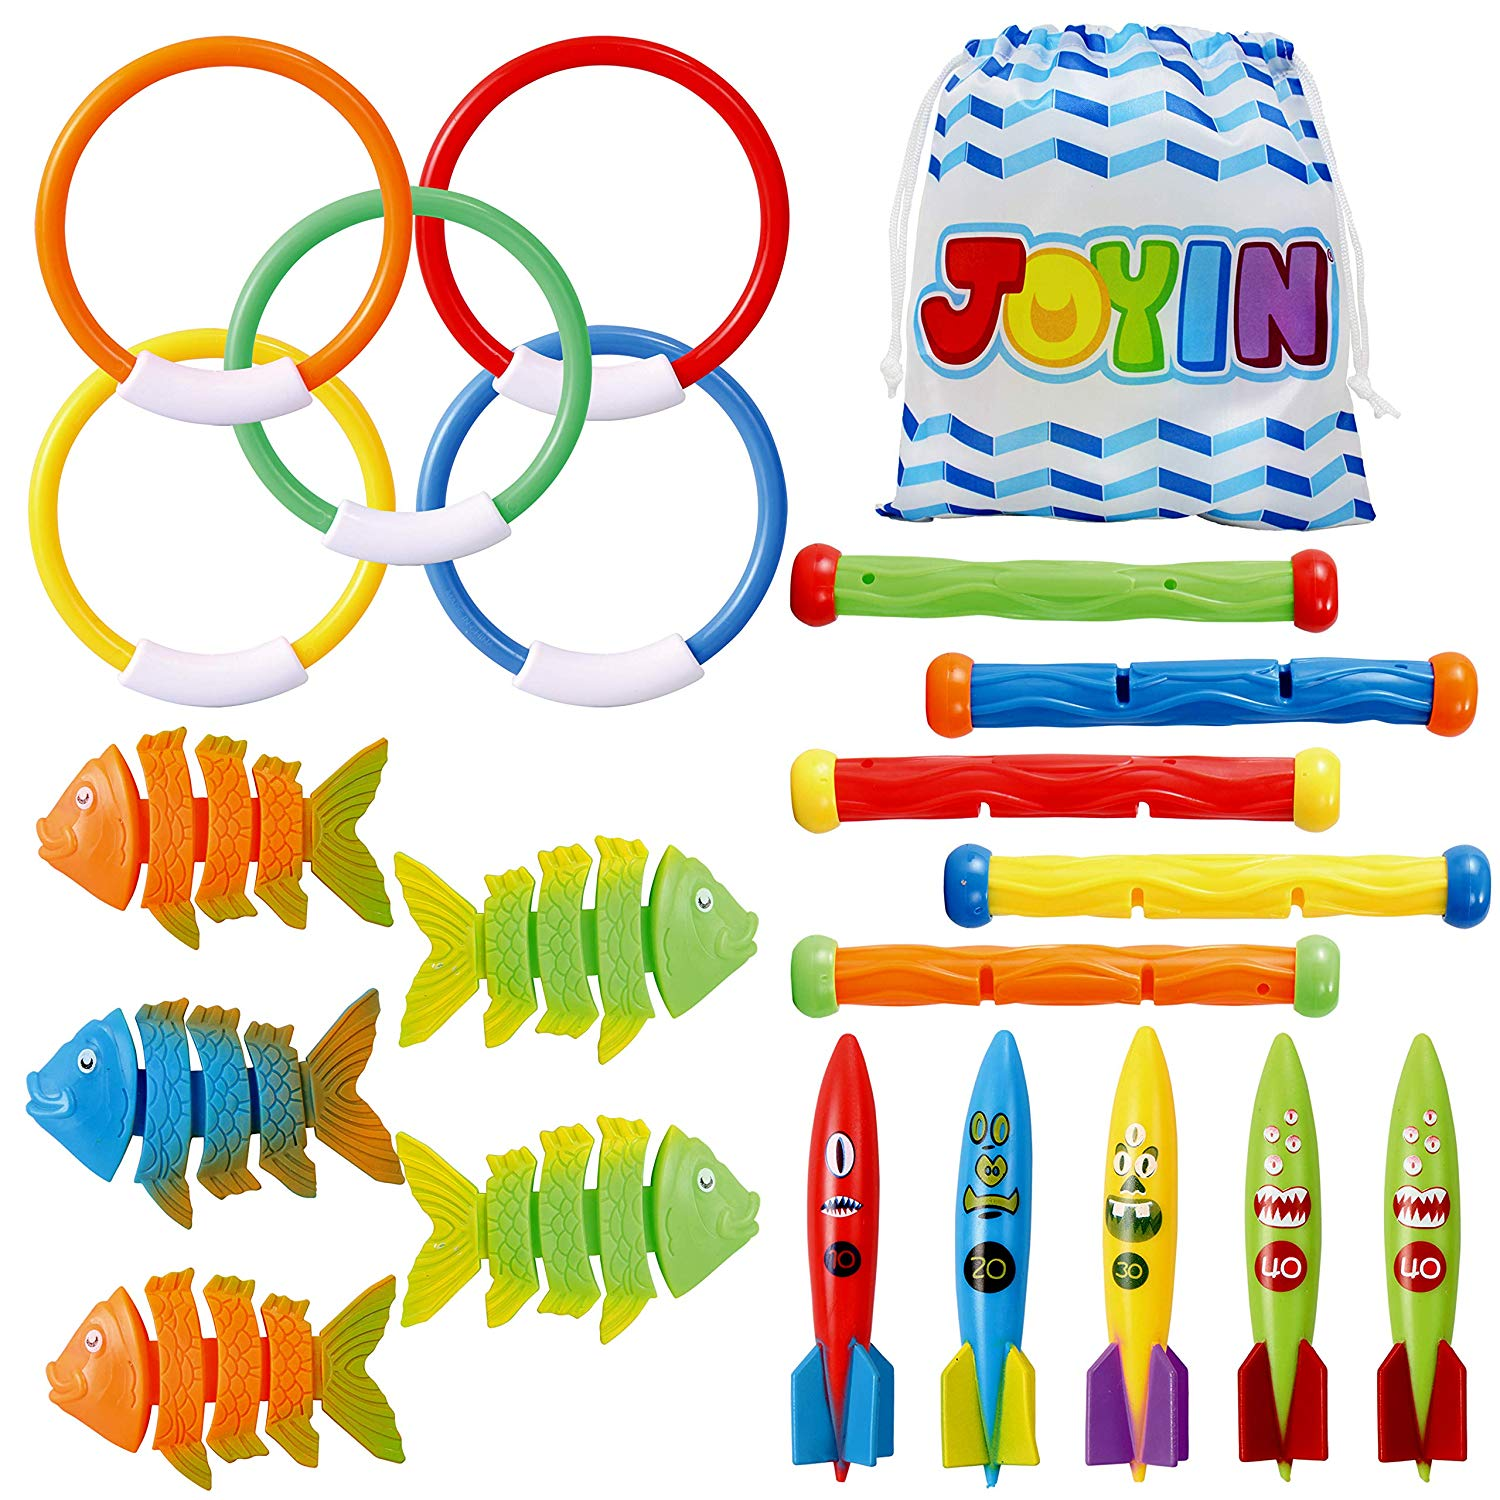 20 Pcs Diving Pool Toys Set